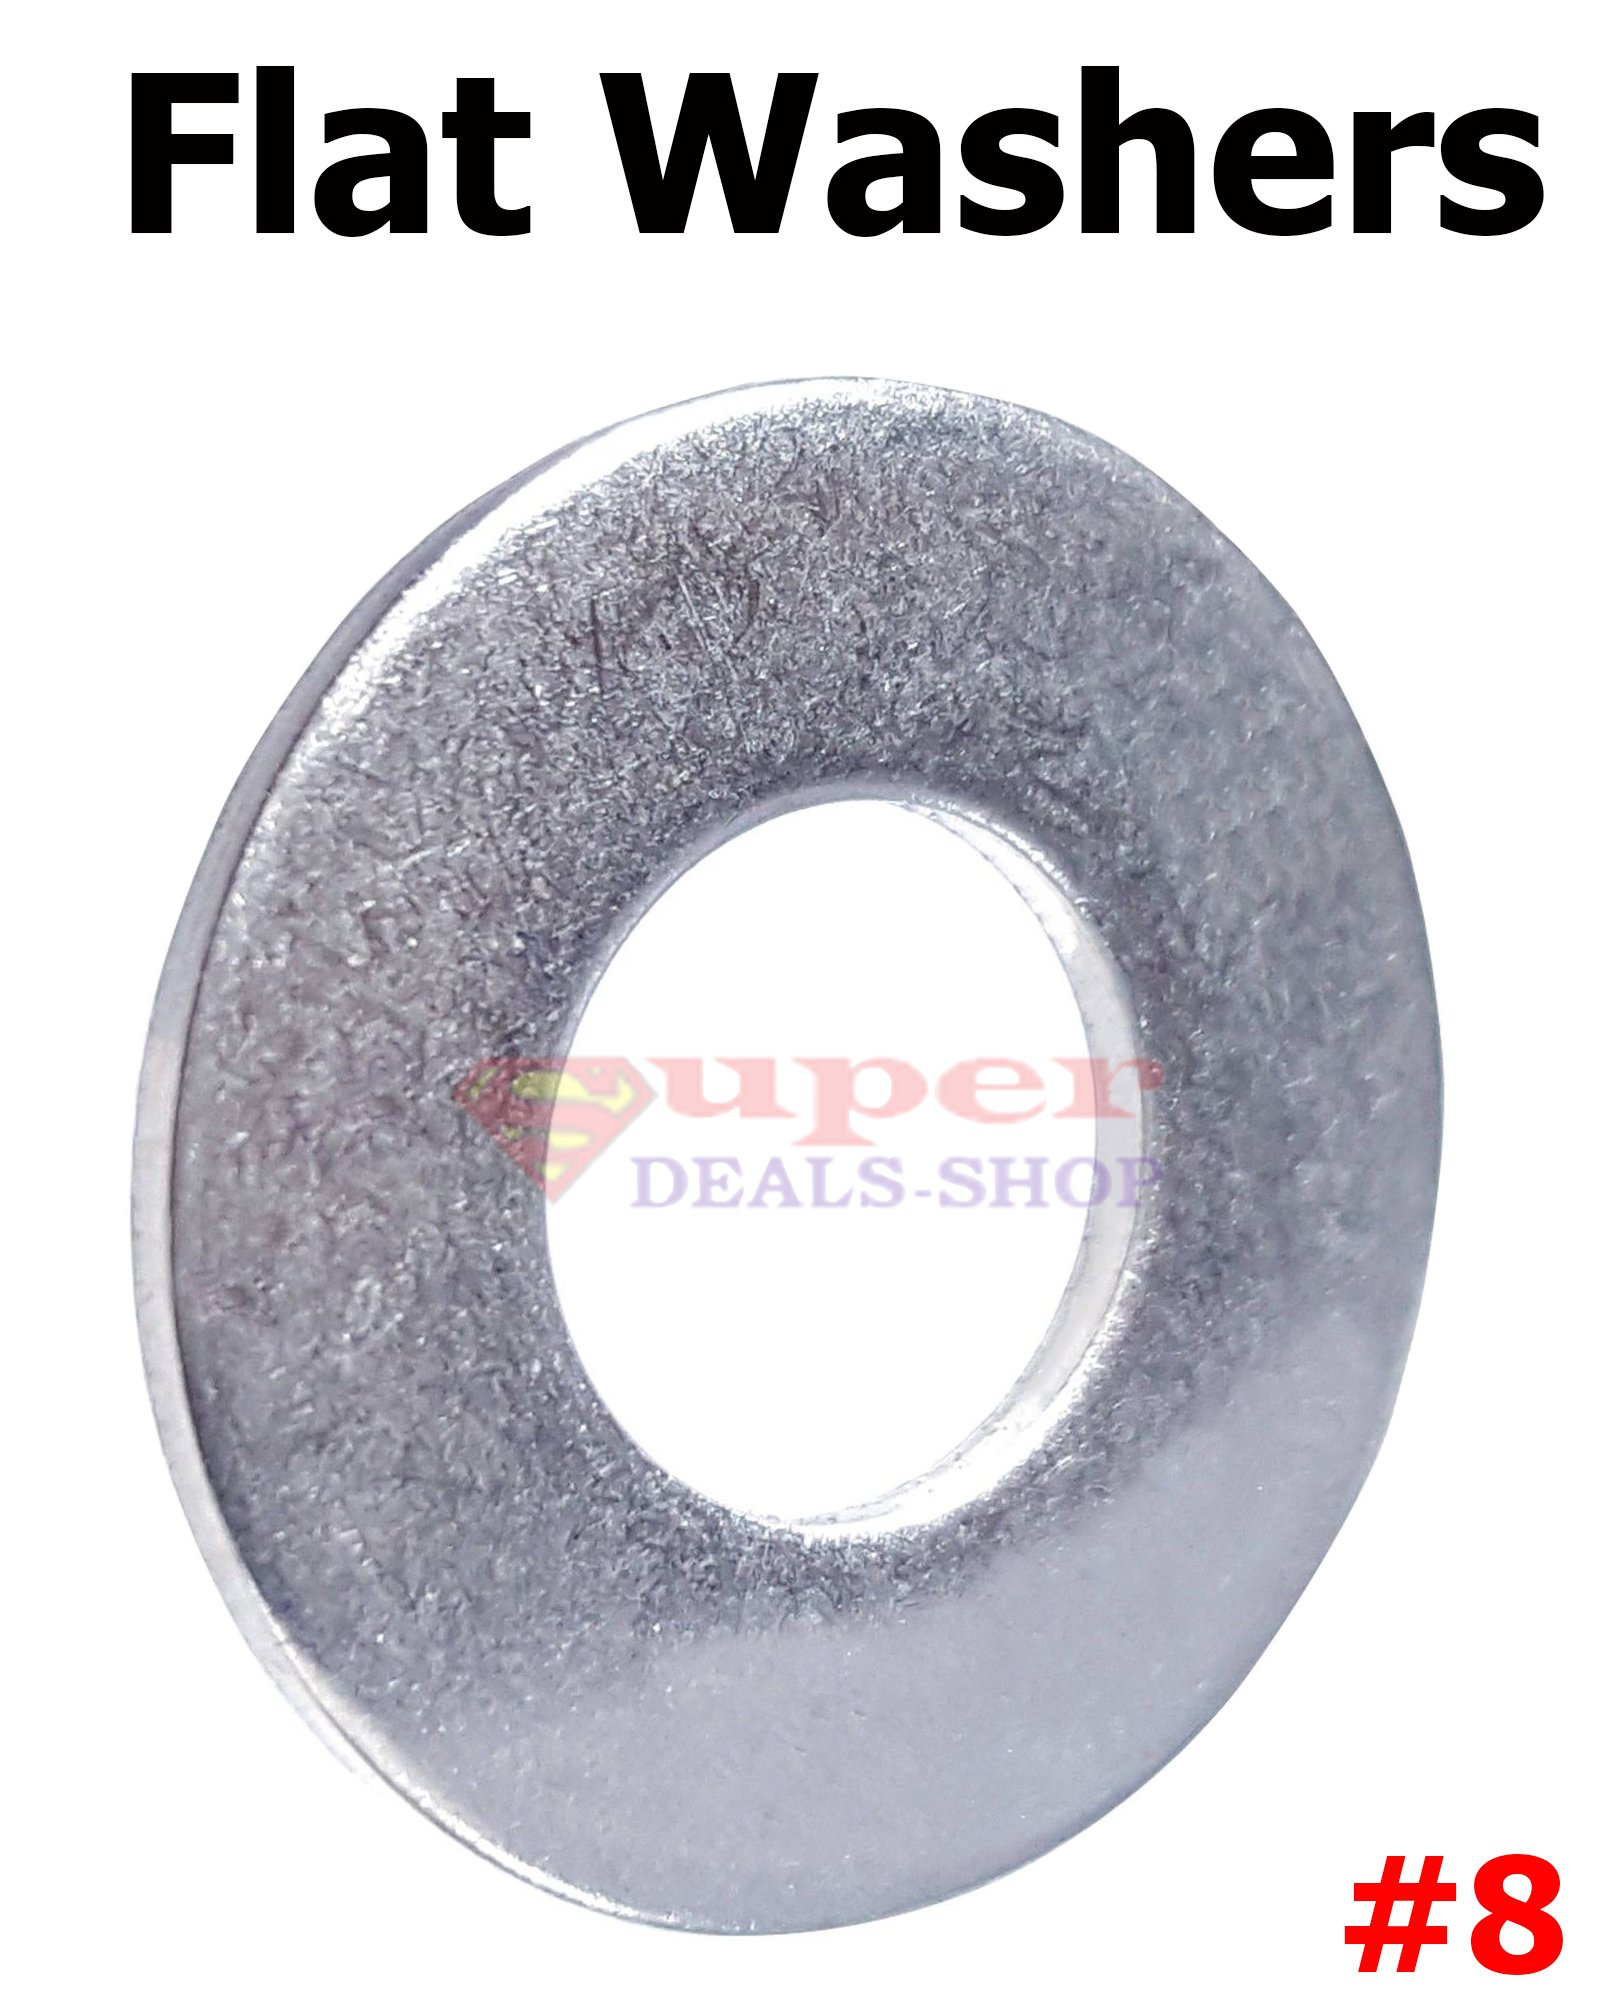 1000 Pcs #8 Stainless Steel Flat Washers SS Flat Washer Flats Super-Deals-Shop